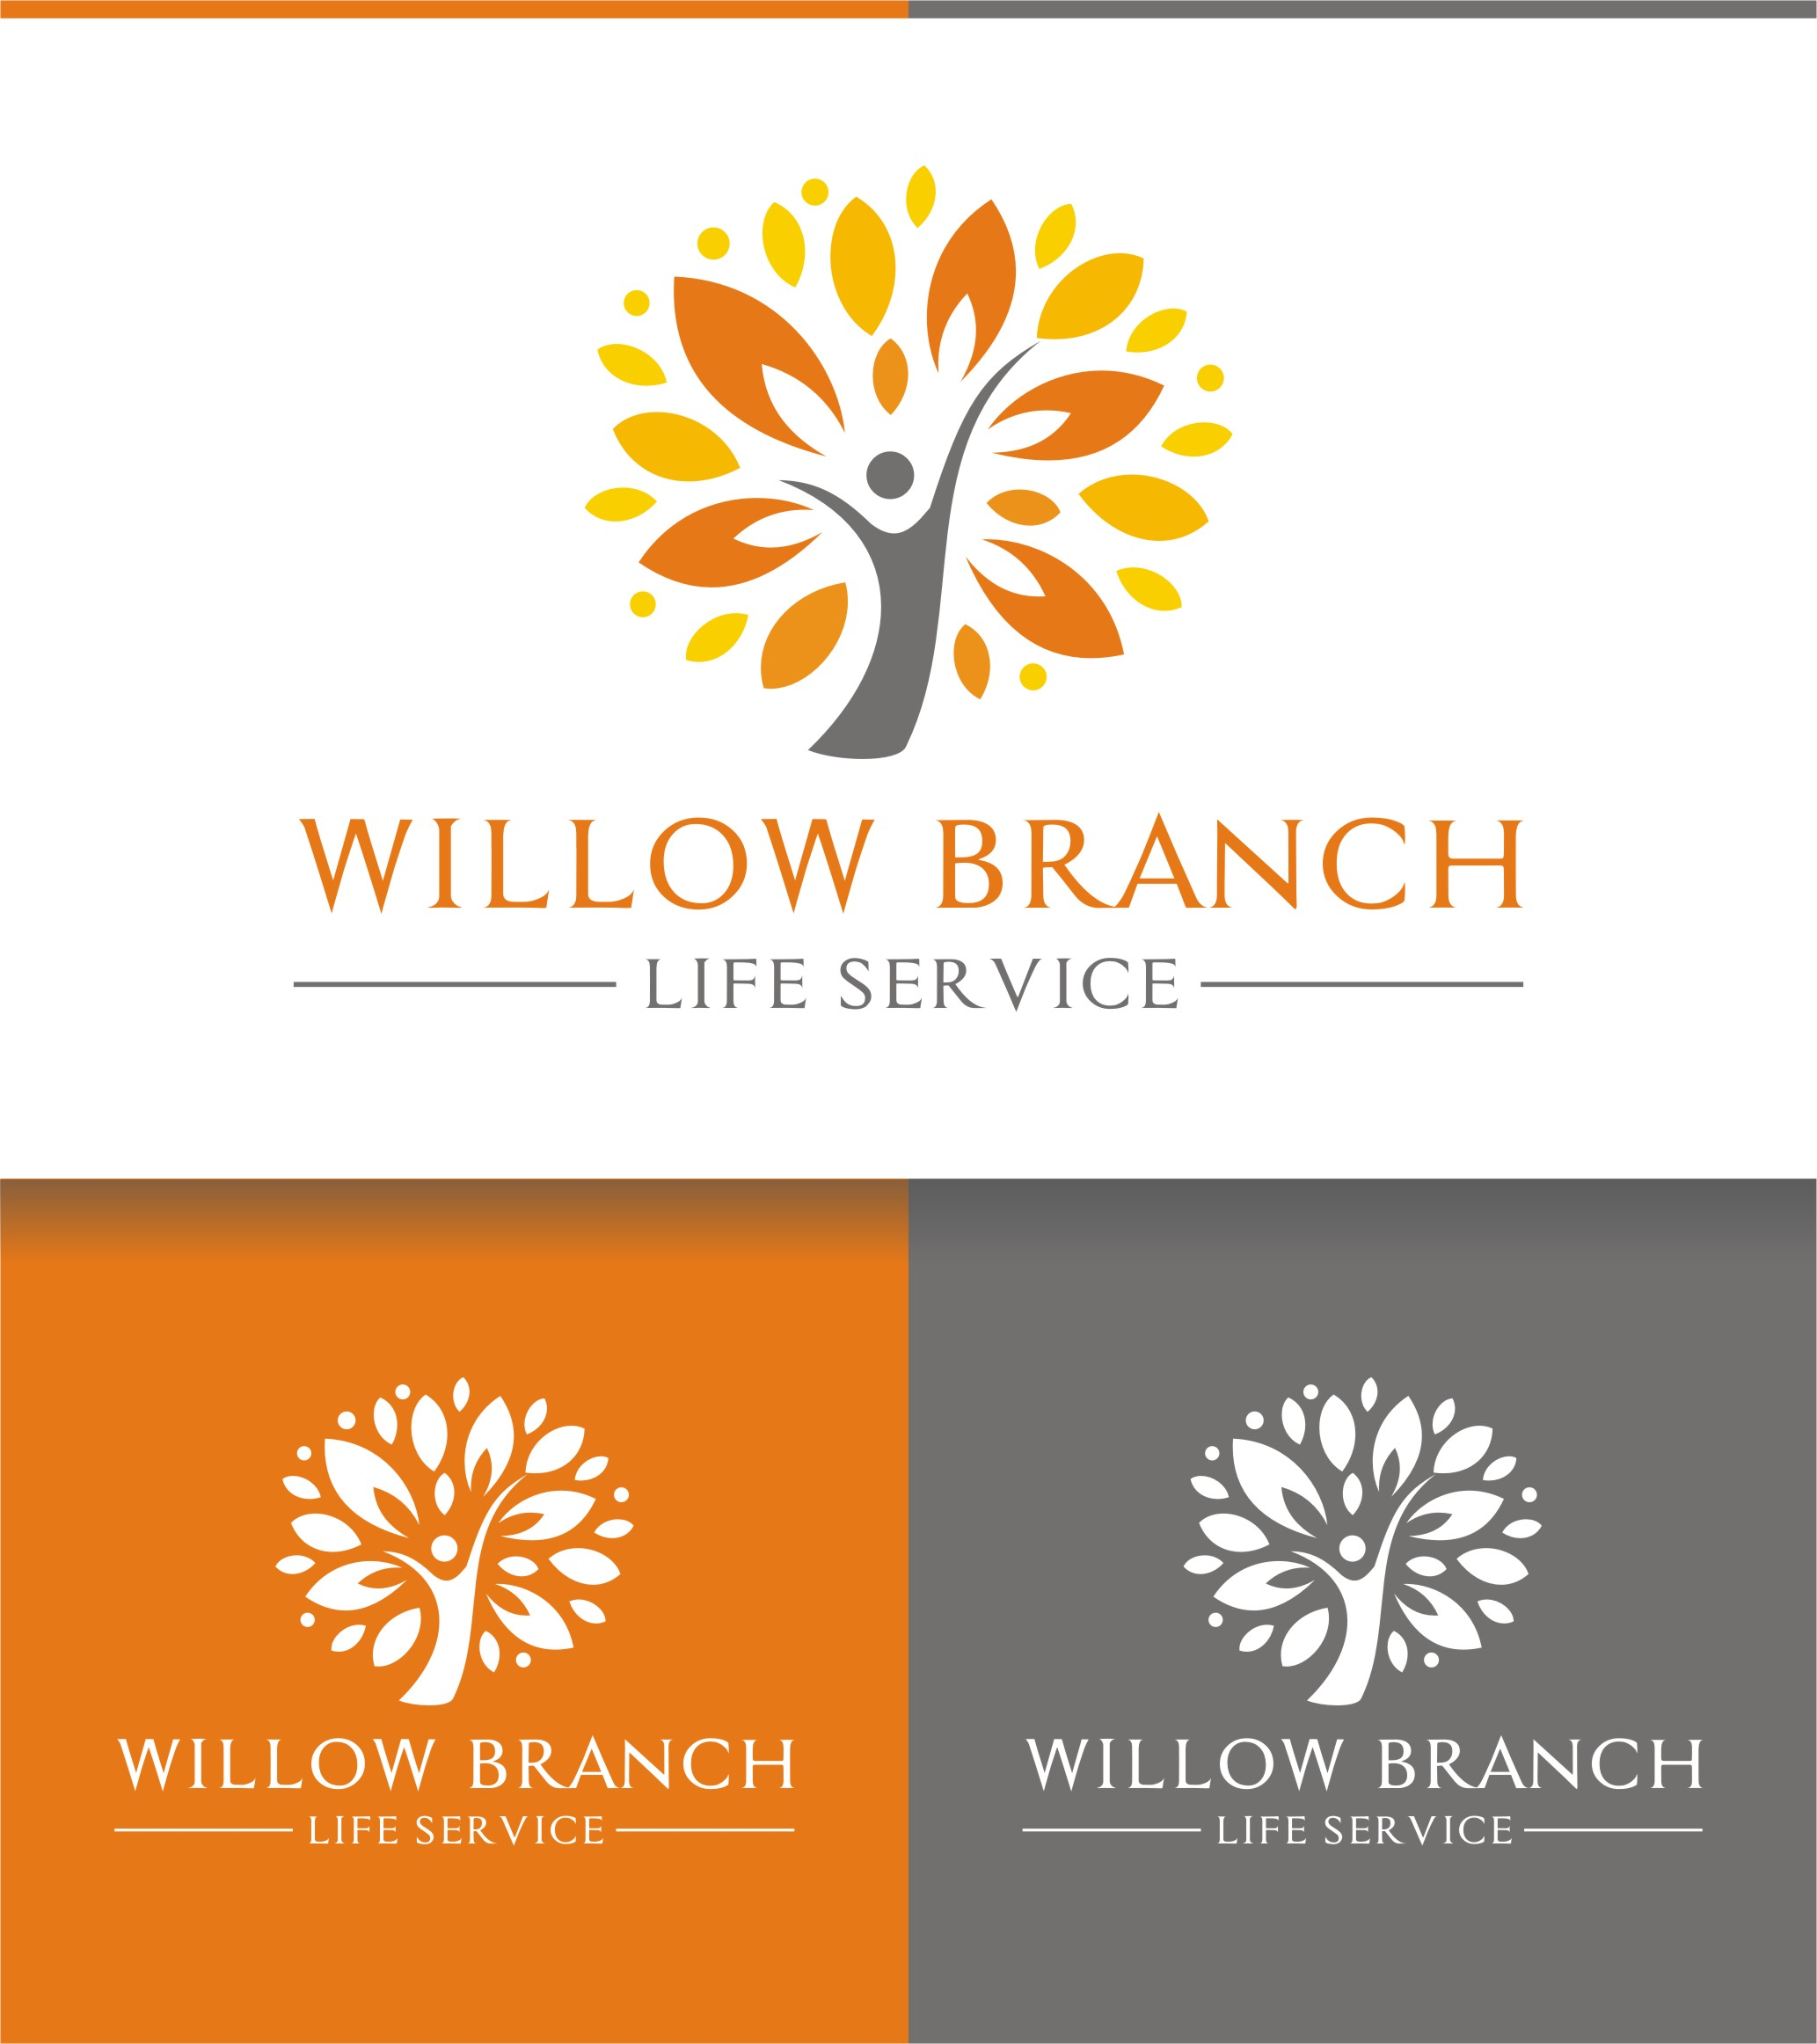 Logo Design by Spider Graphics - Entry No. 217 in the Logo Design Contest Artistic Logo Design for Willow Branch Life Service.